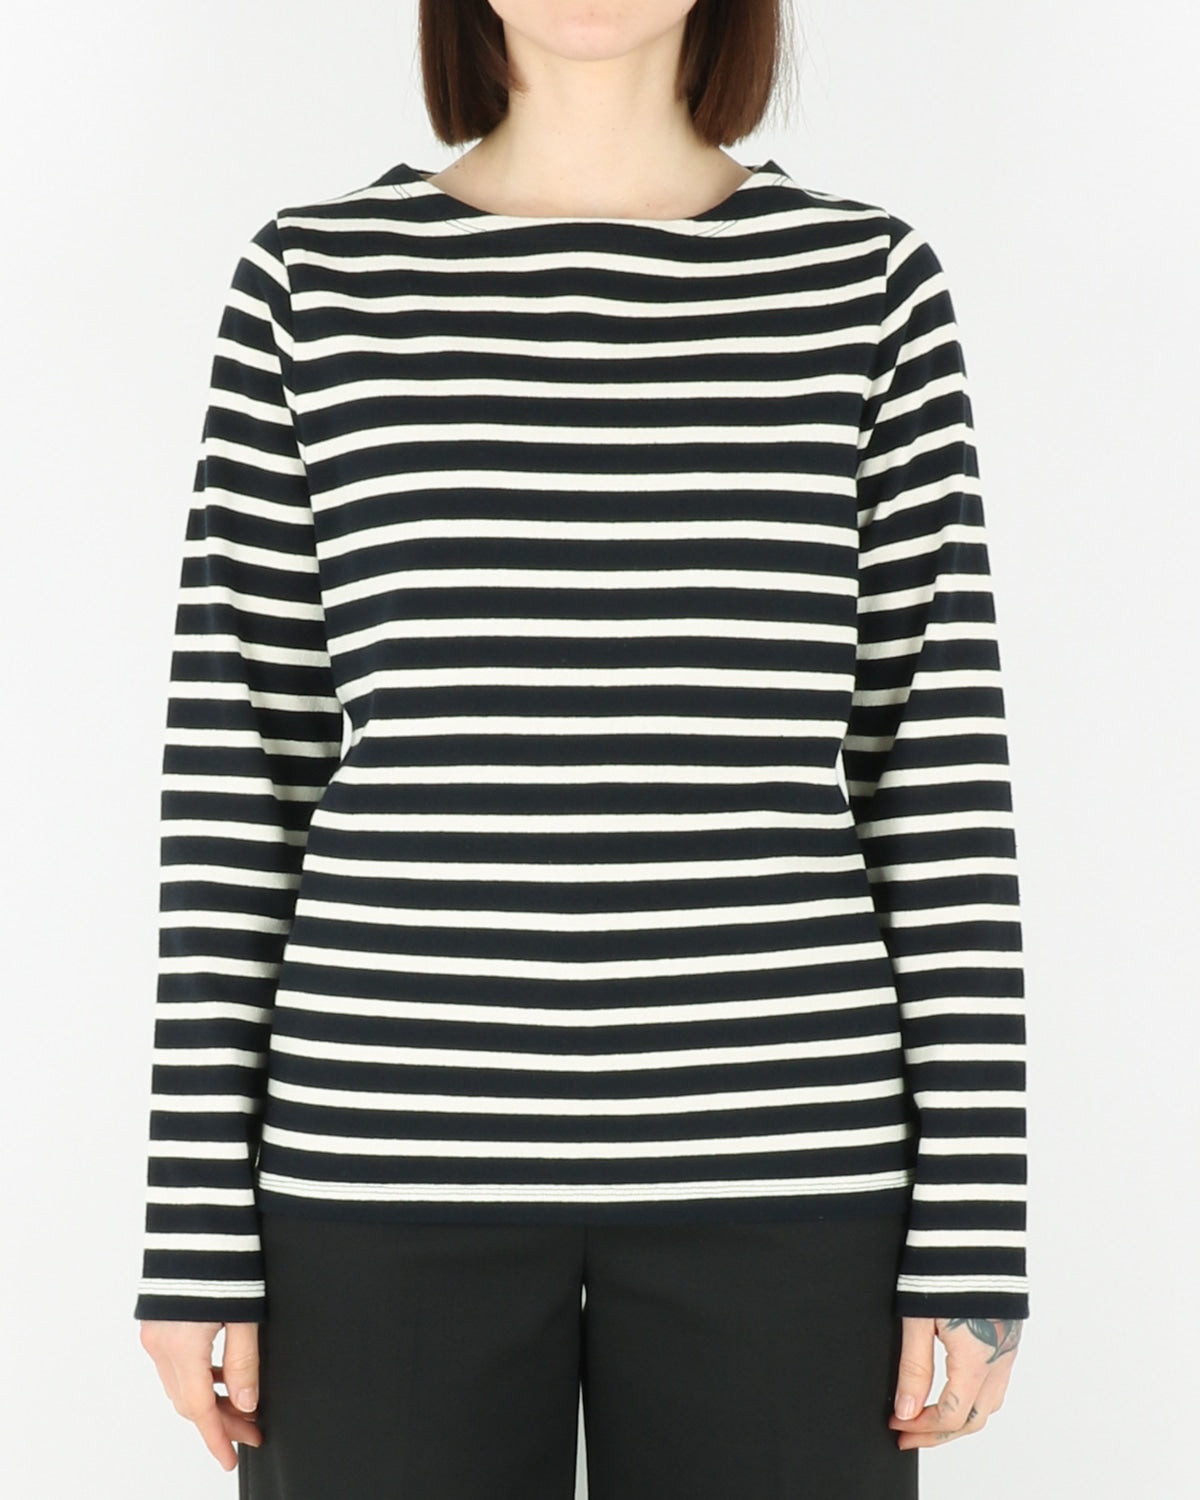 norse projects women_inge classic stripe_dark navy_view_1_2